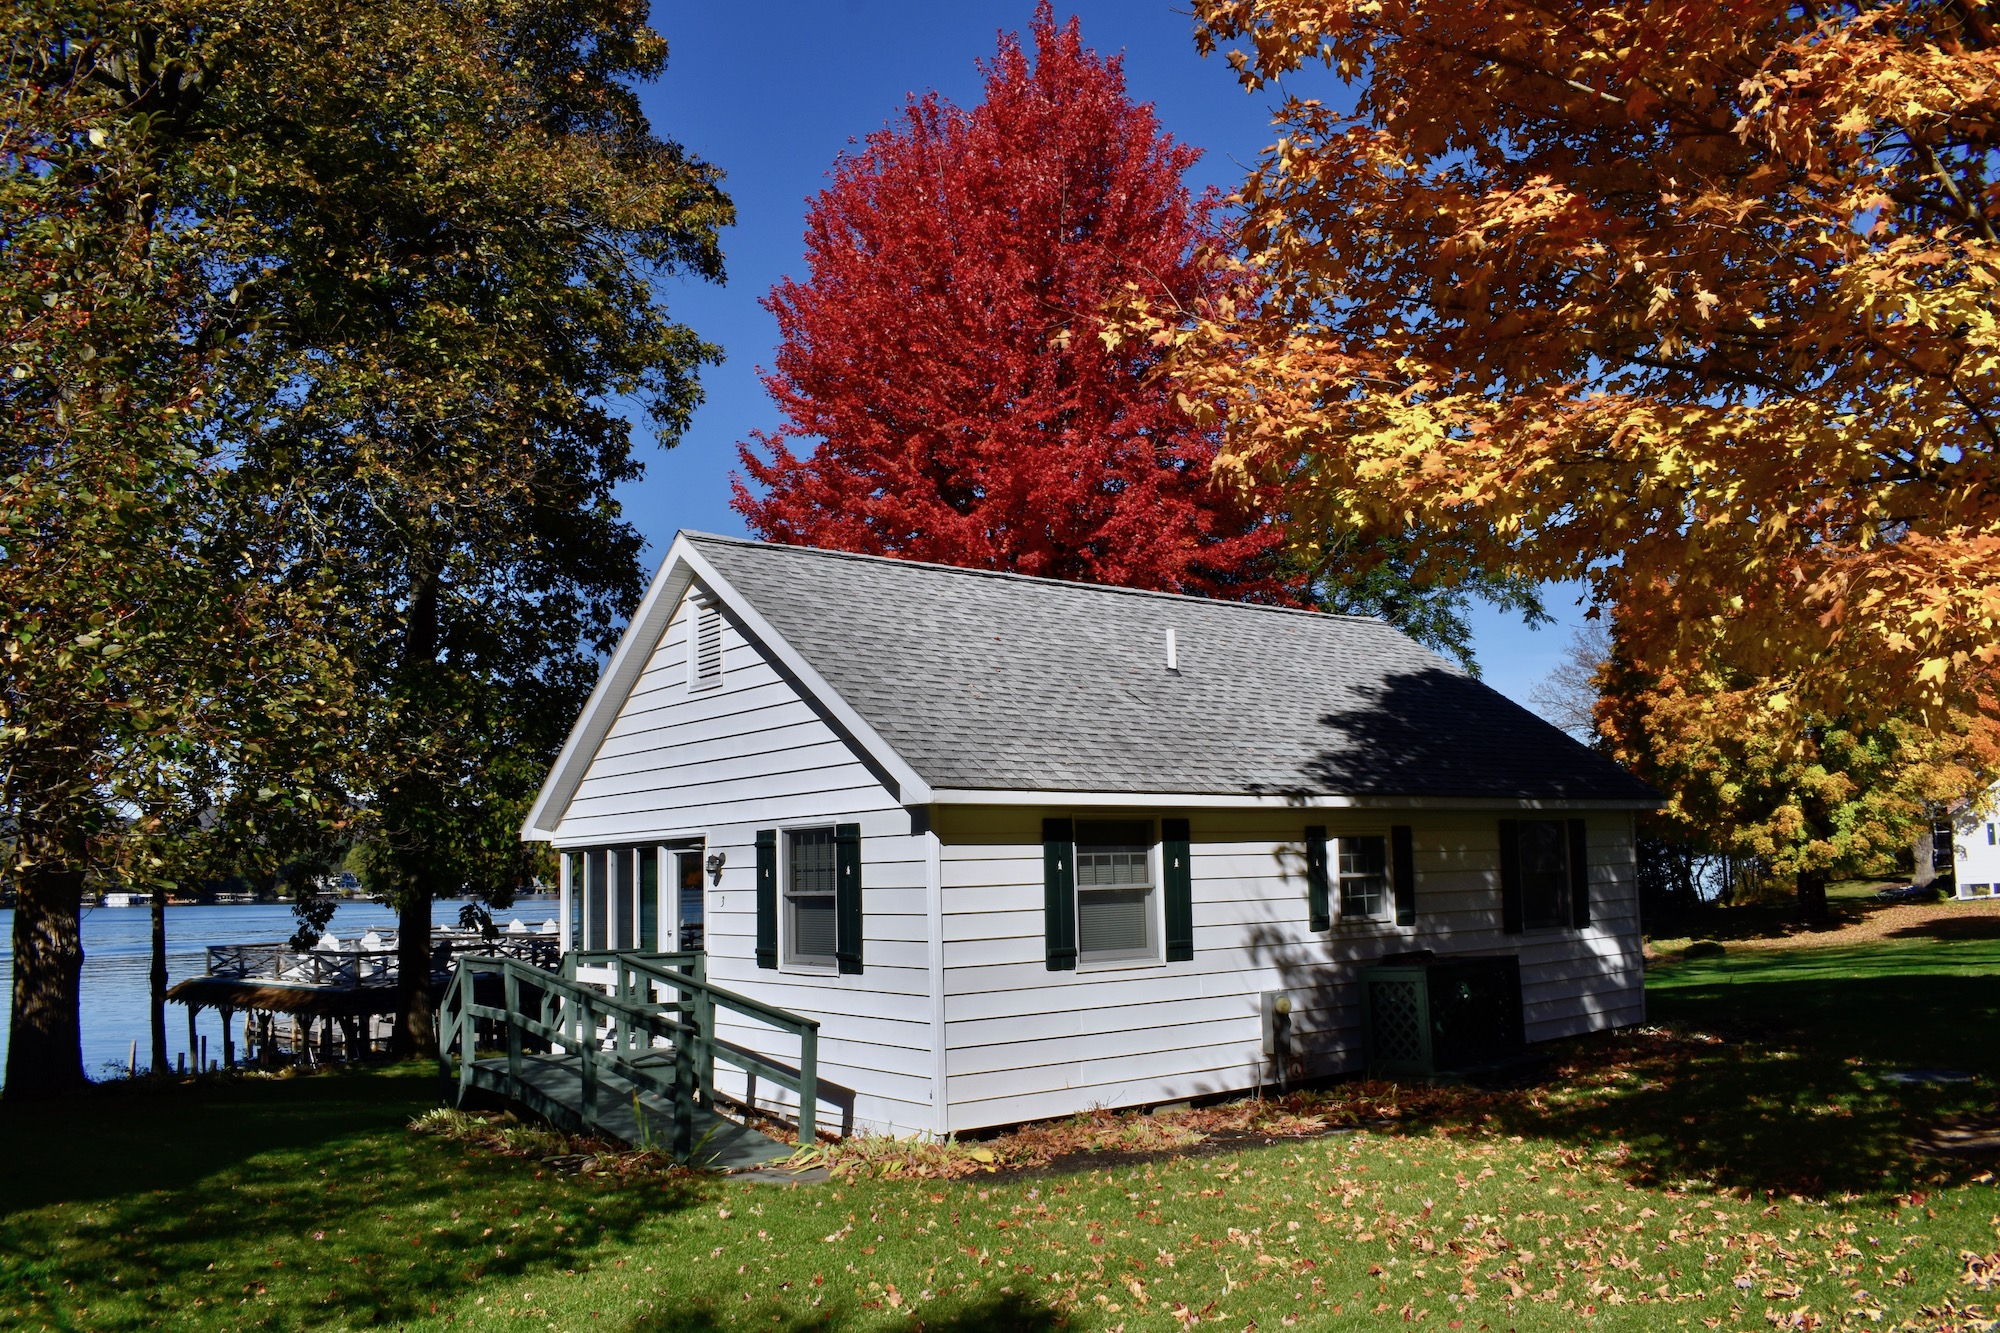 Lake George vacation cabin rental lakefront cottage with Fall Foliage at Takundewide Cottages on Lake George